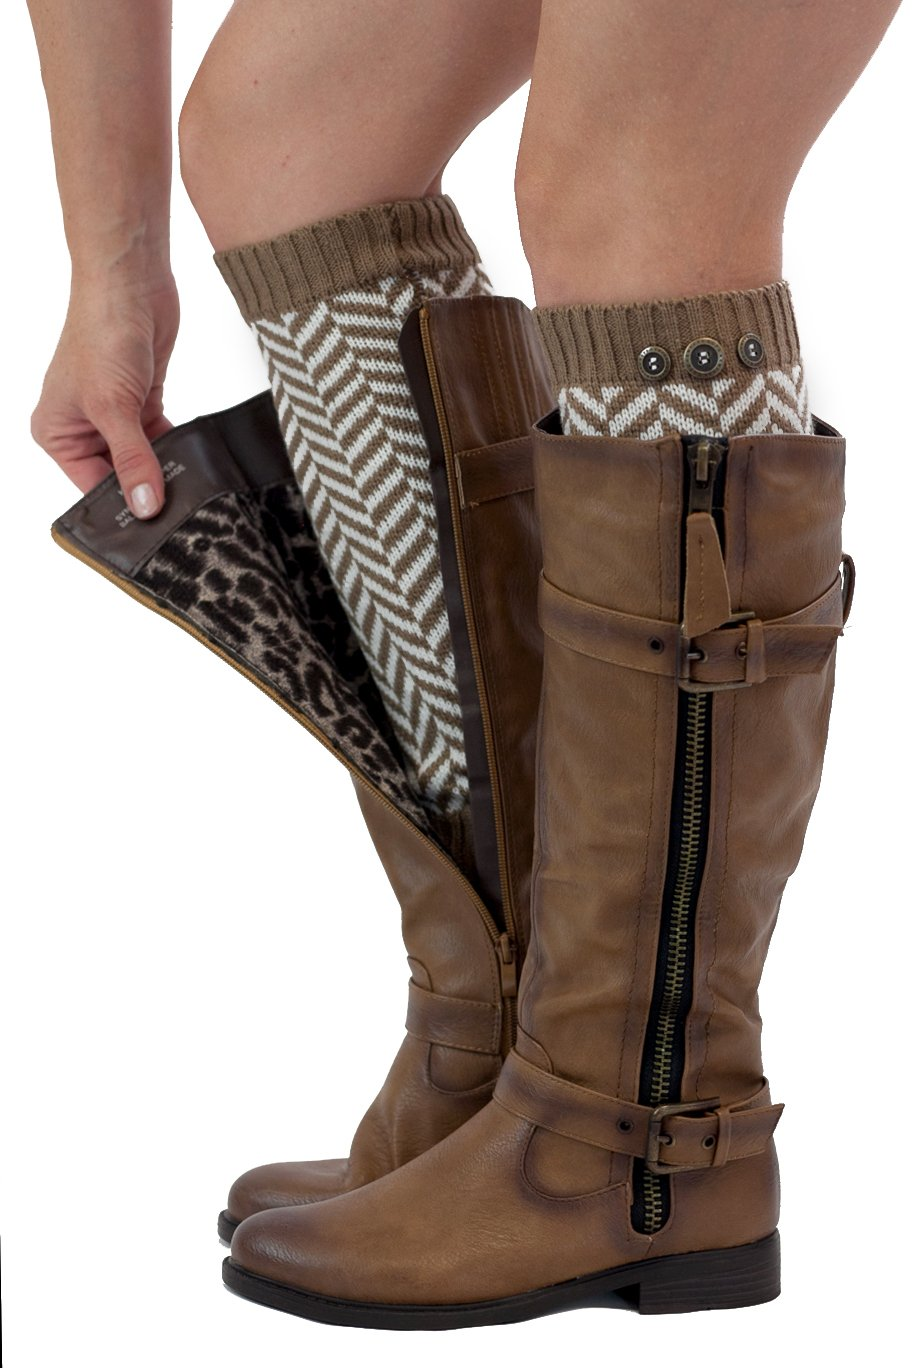 Chevron Leg Warmers Womens Knit with 3 Buttons By Modern Boho (Brown)